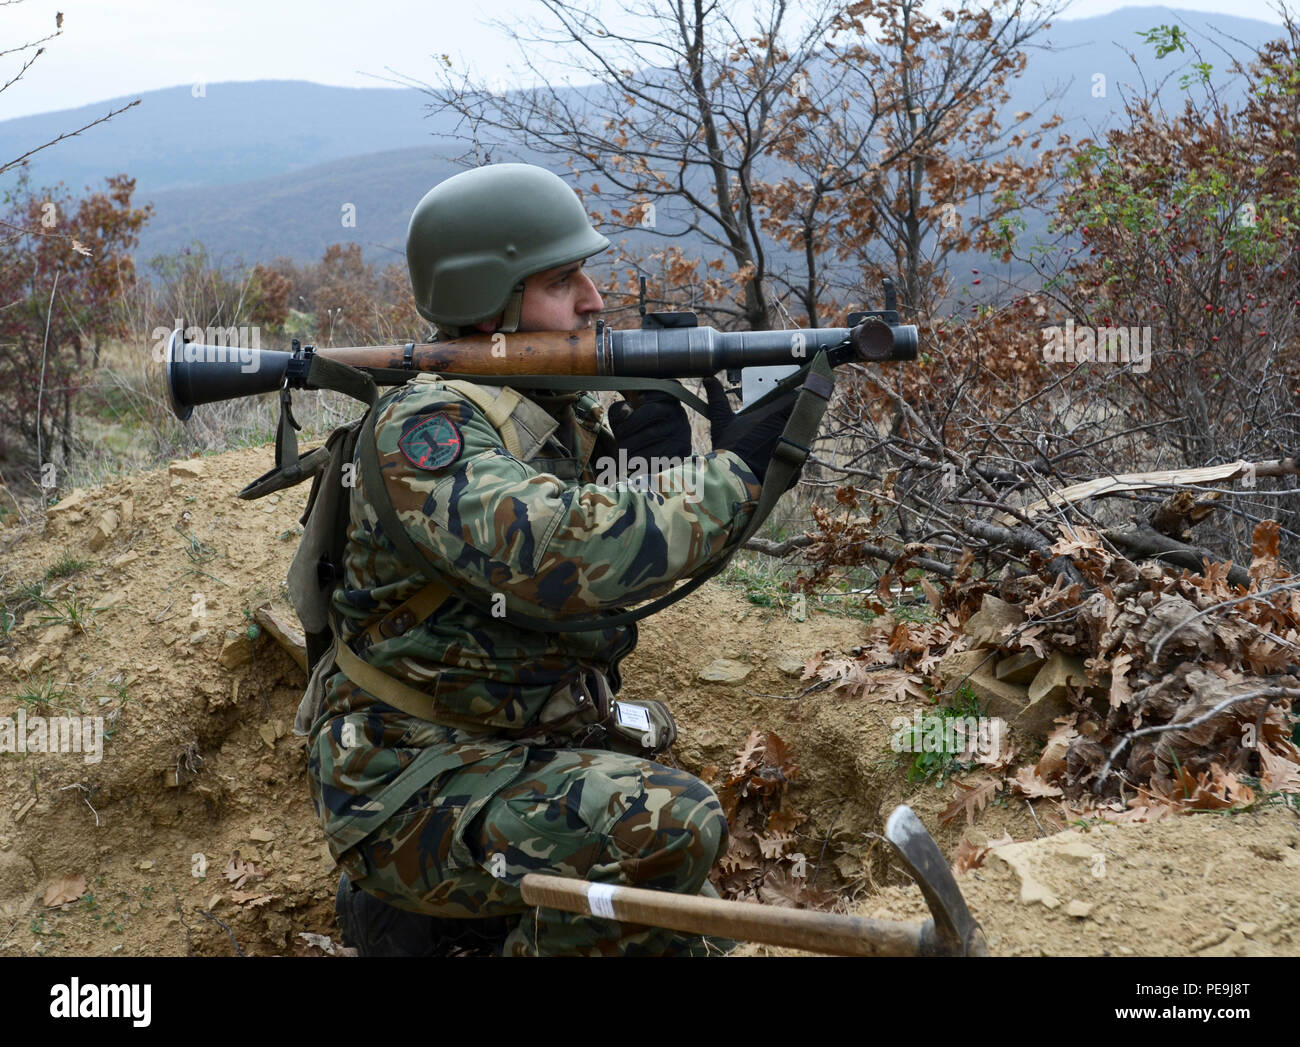 Bulgarian Army Pvt. Varban Durchev, of 1st Battalion, 61st Mechanized Brigade, suppresses the enemy with a Rocket-Propelled Grenade Launcher (RPG-7) during Exercise Peace Sentinel at Novo Selo Training Center, Bulgaria, Nov. 21, 2015. Durchev used a small pickaxe (foreground) to dig out an area in which he could position himself to fire the RPG-7 behind cover. (Photo by Staff Sgt. Steven M. Colvin/Released) - Stock Image